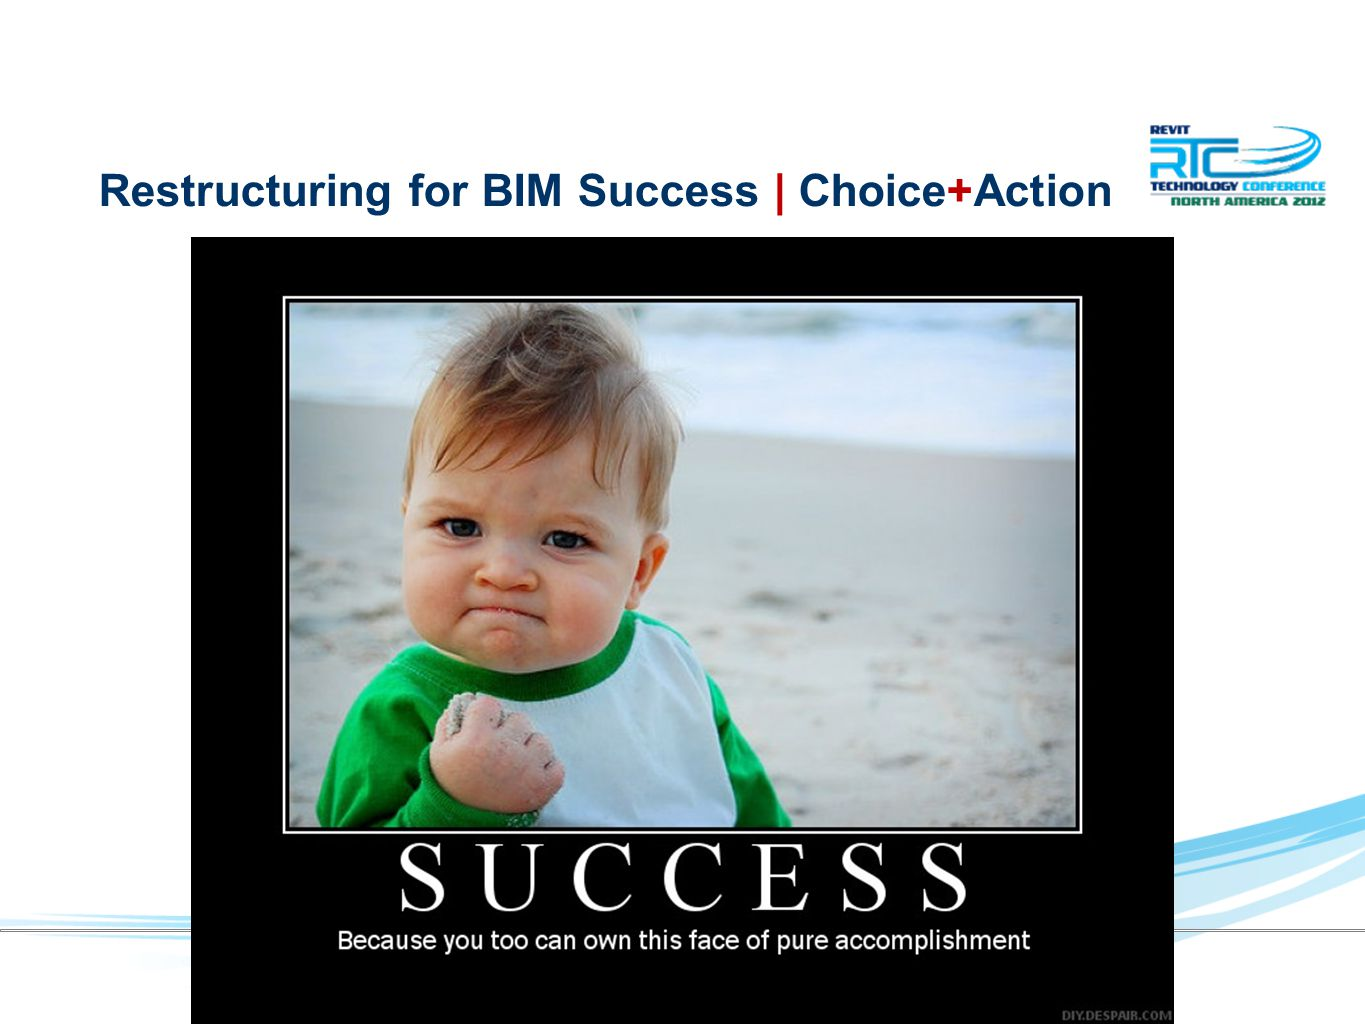 Restructuring for BIM Success | Choice+Action